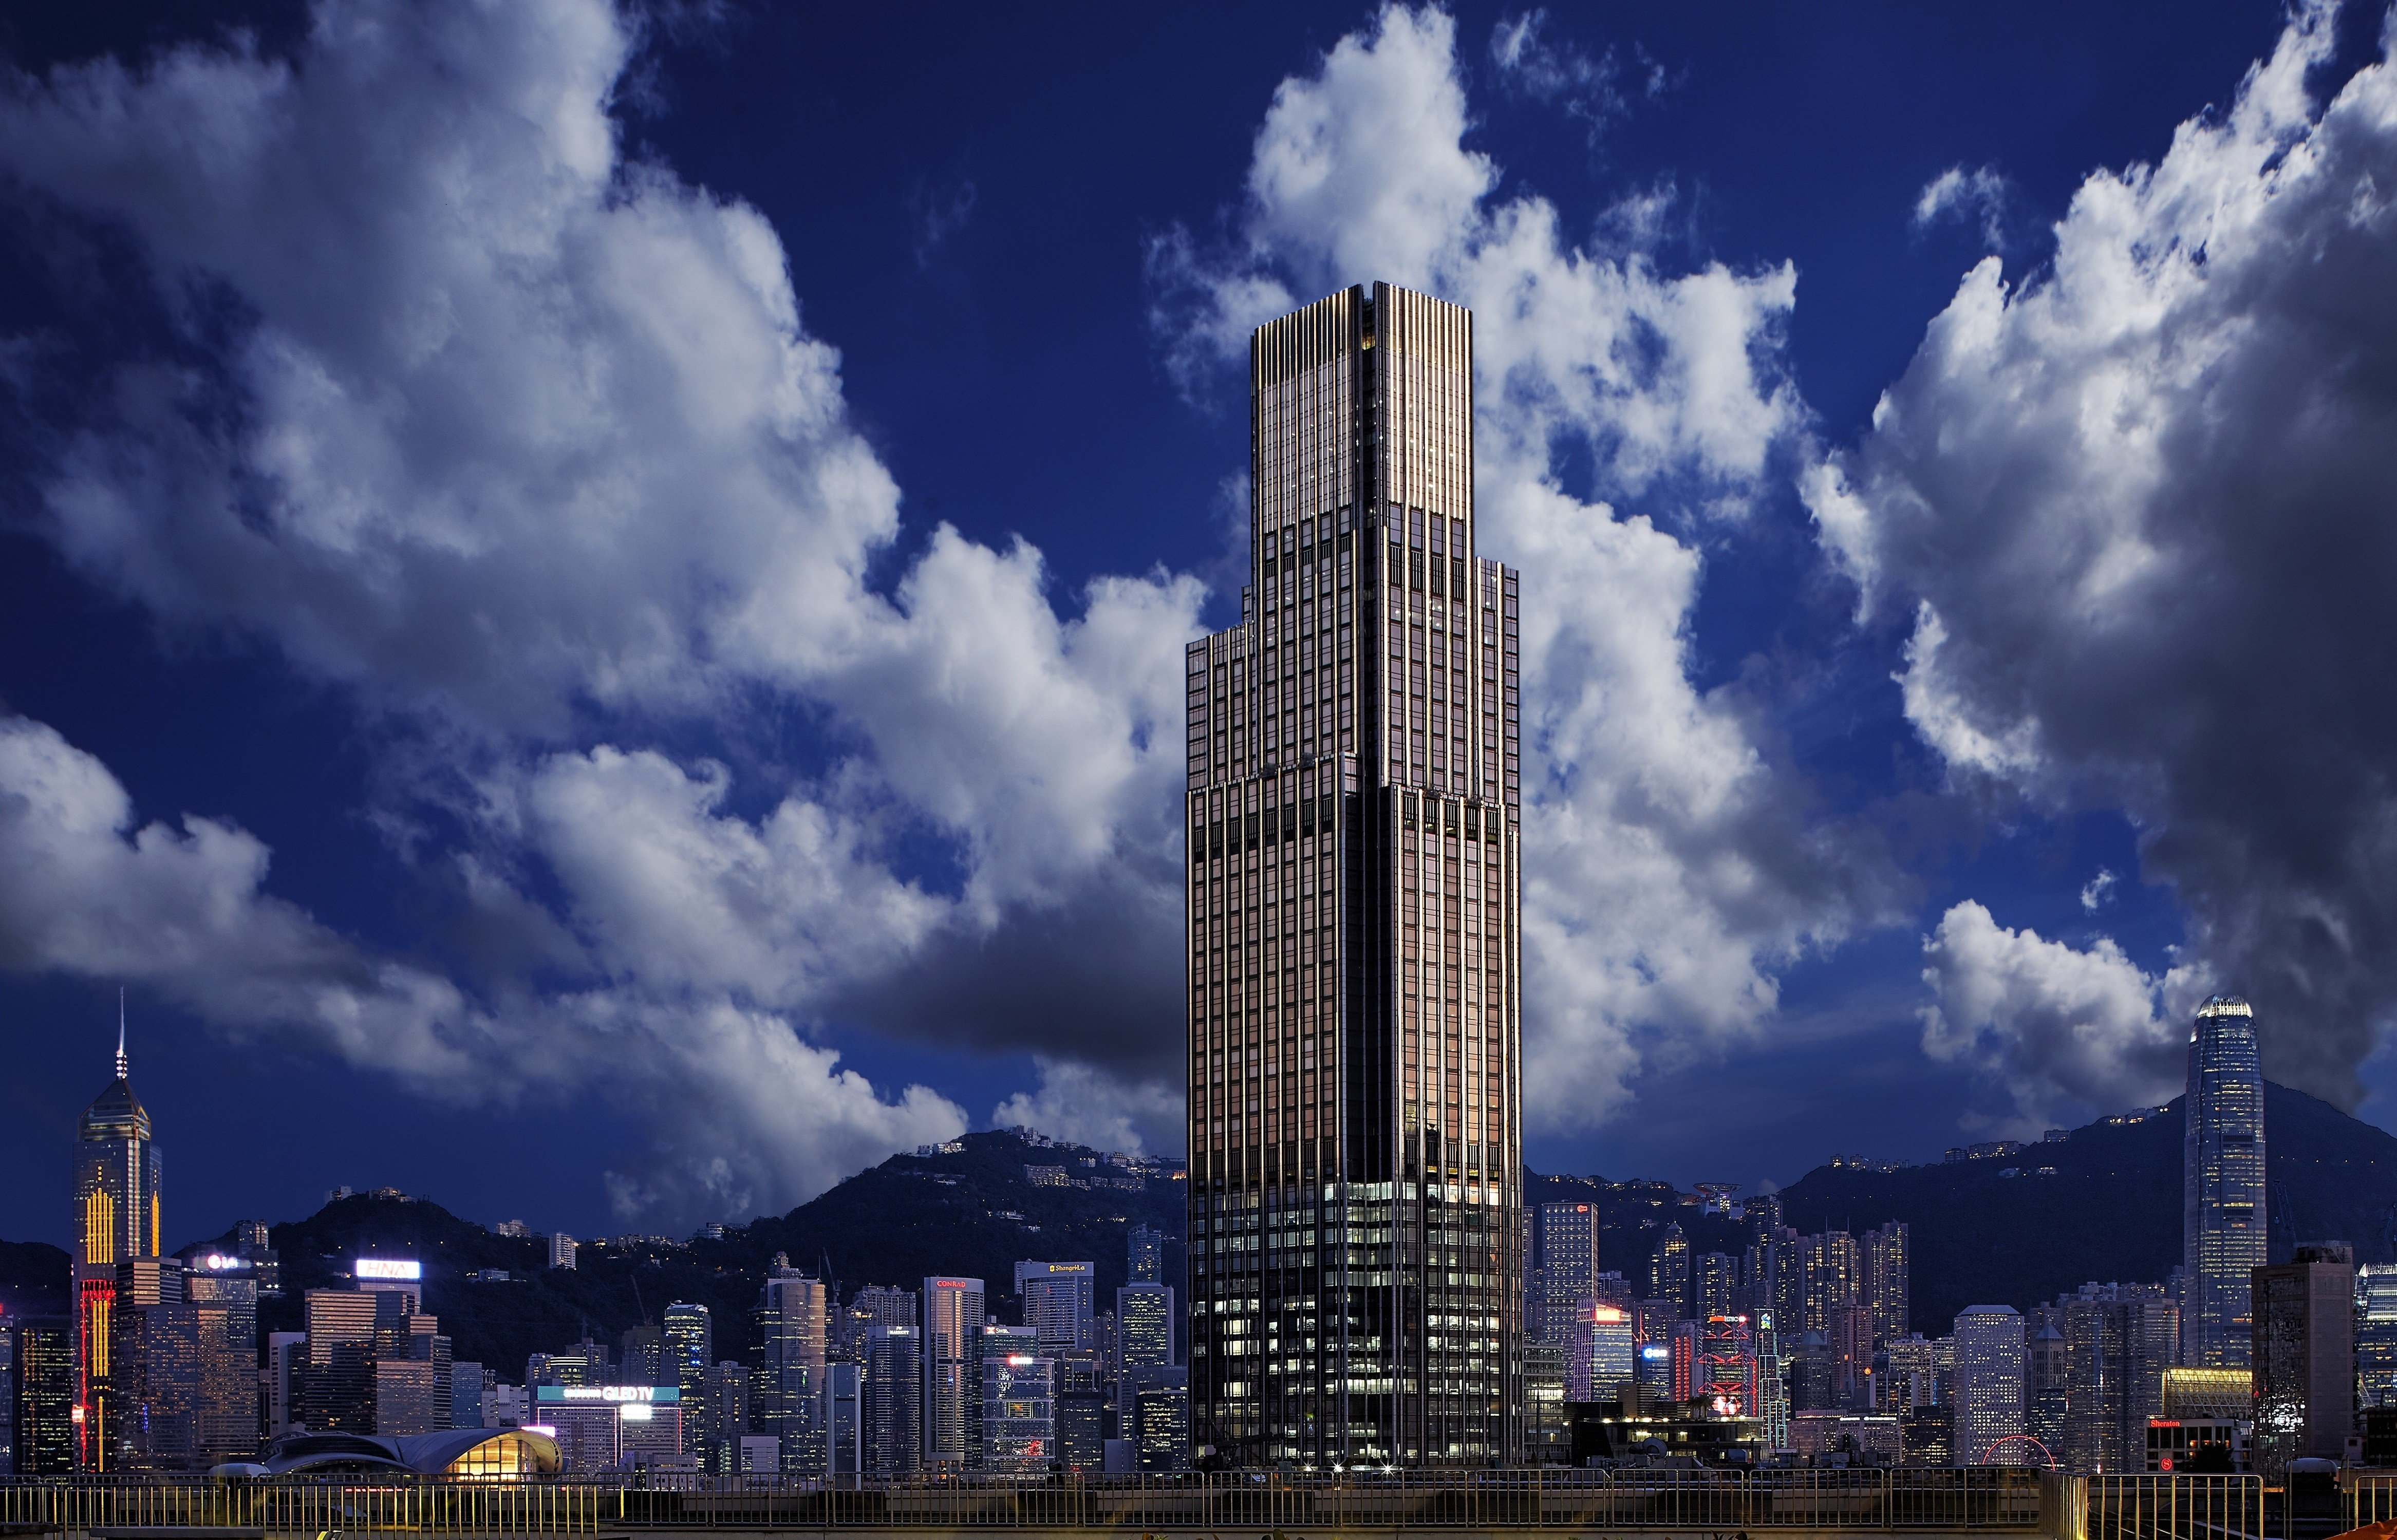 We check in to the Rosewood Hong Kong, the newest luxury hotel on